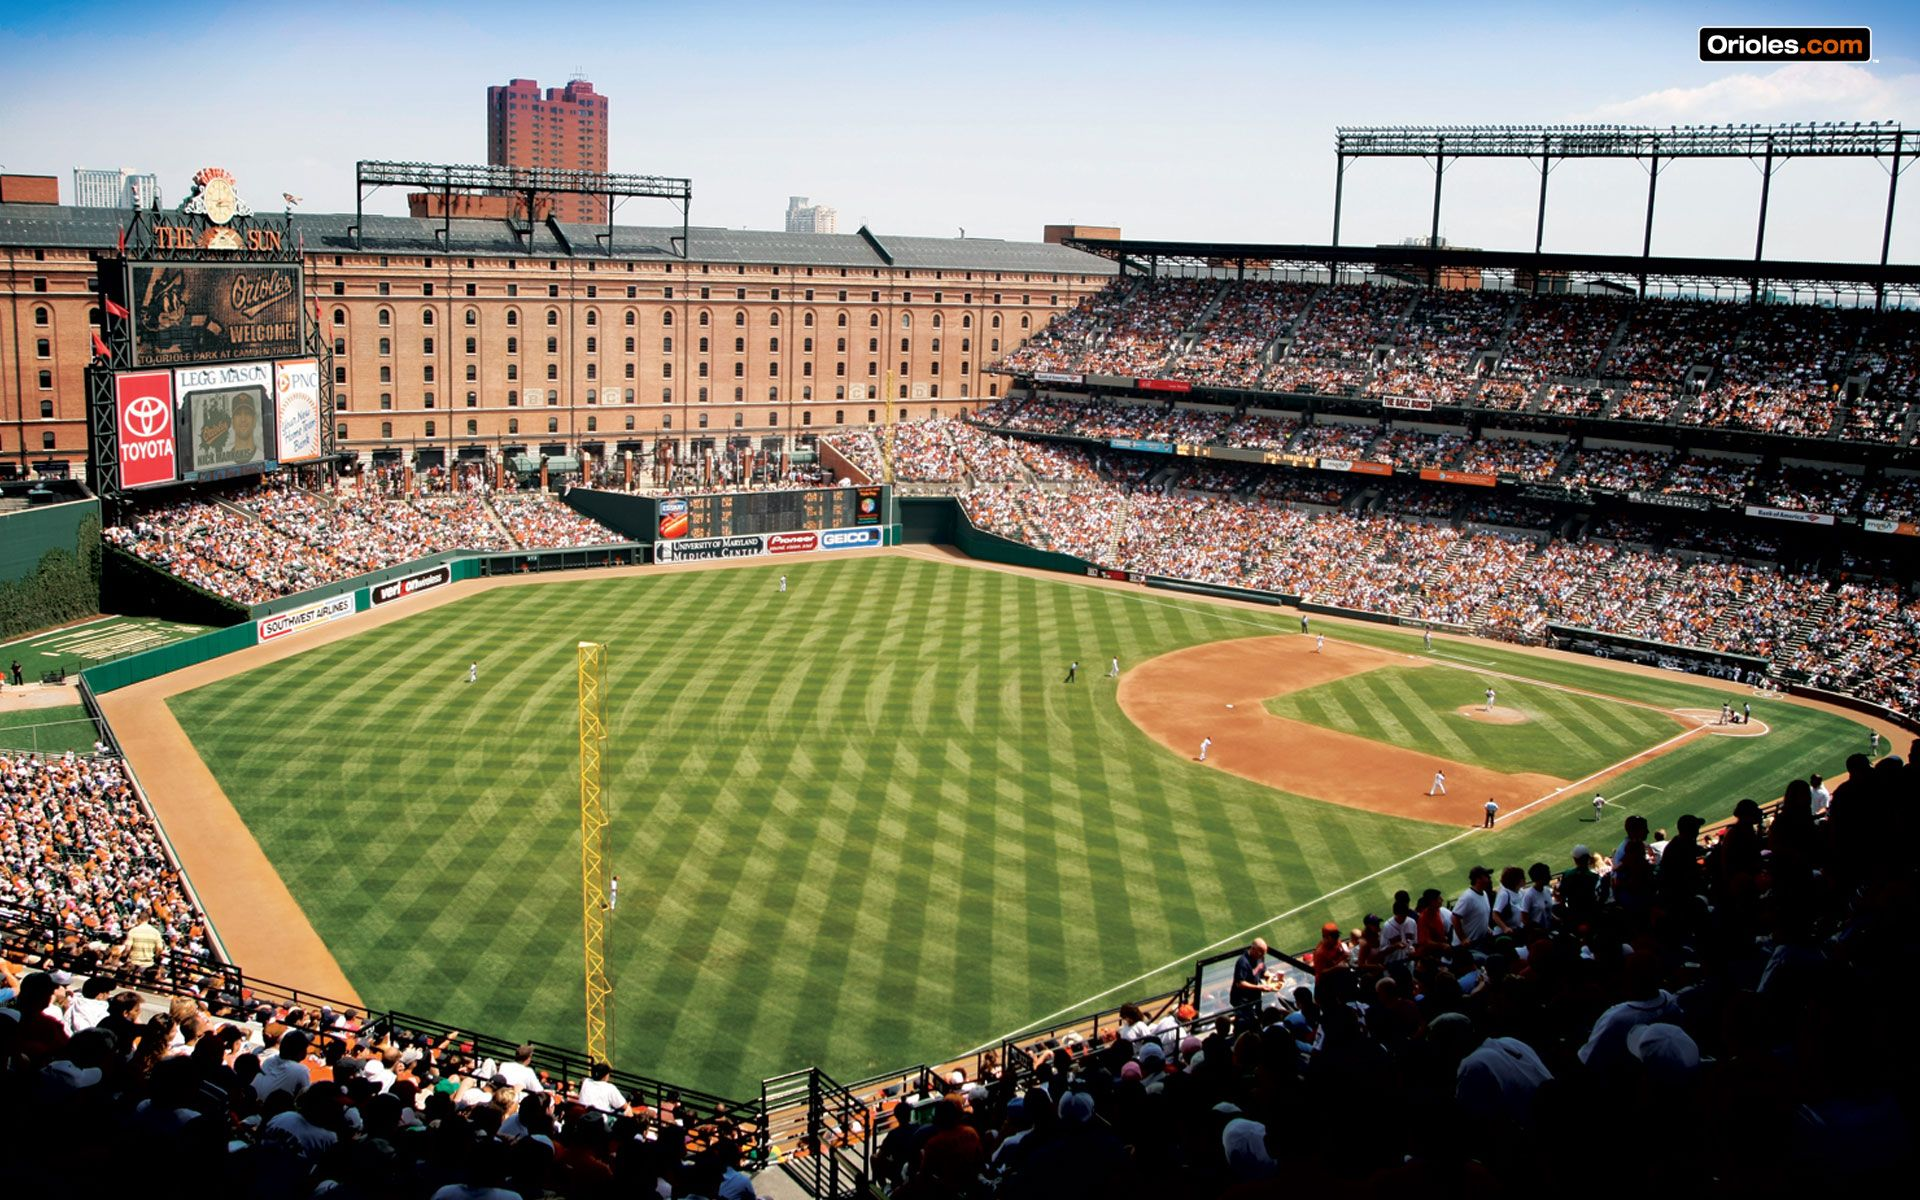 Baltimore Orioles Wallpapers Browser Themes More Baltimore Orioles Wallpaper Orioles Wallpaper Baltimore Orioles Stadium